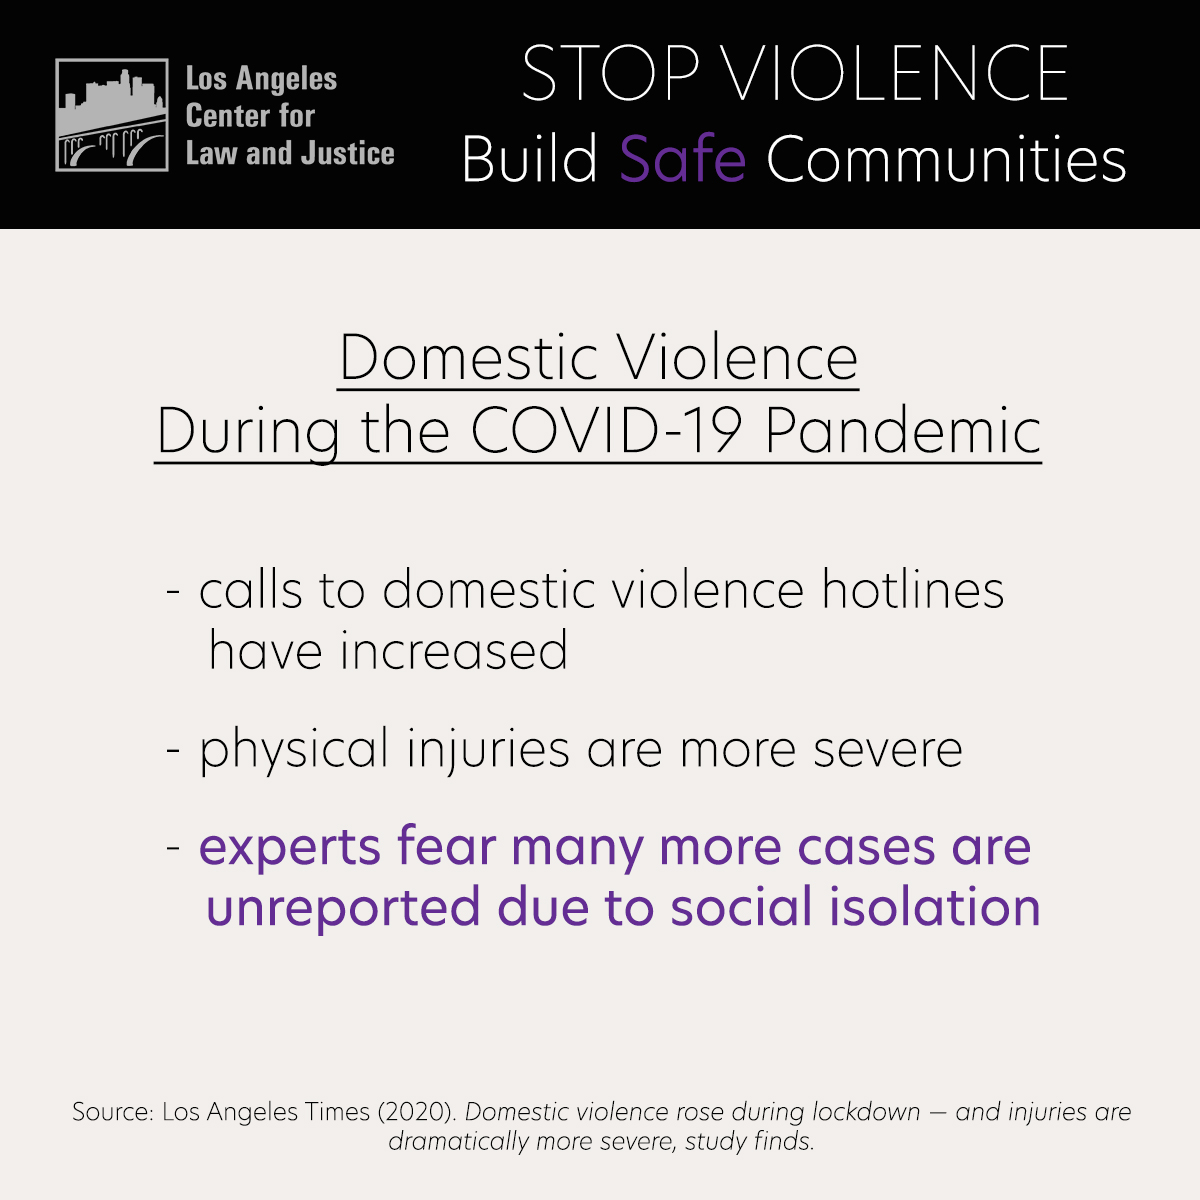 Domestic Violence during the COVID-19 Pandemic